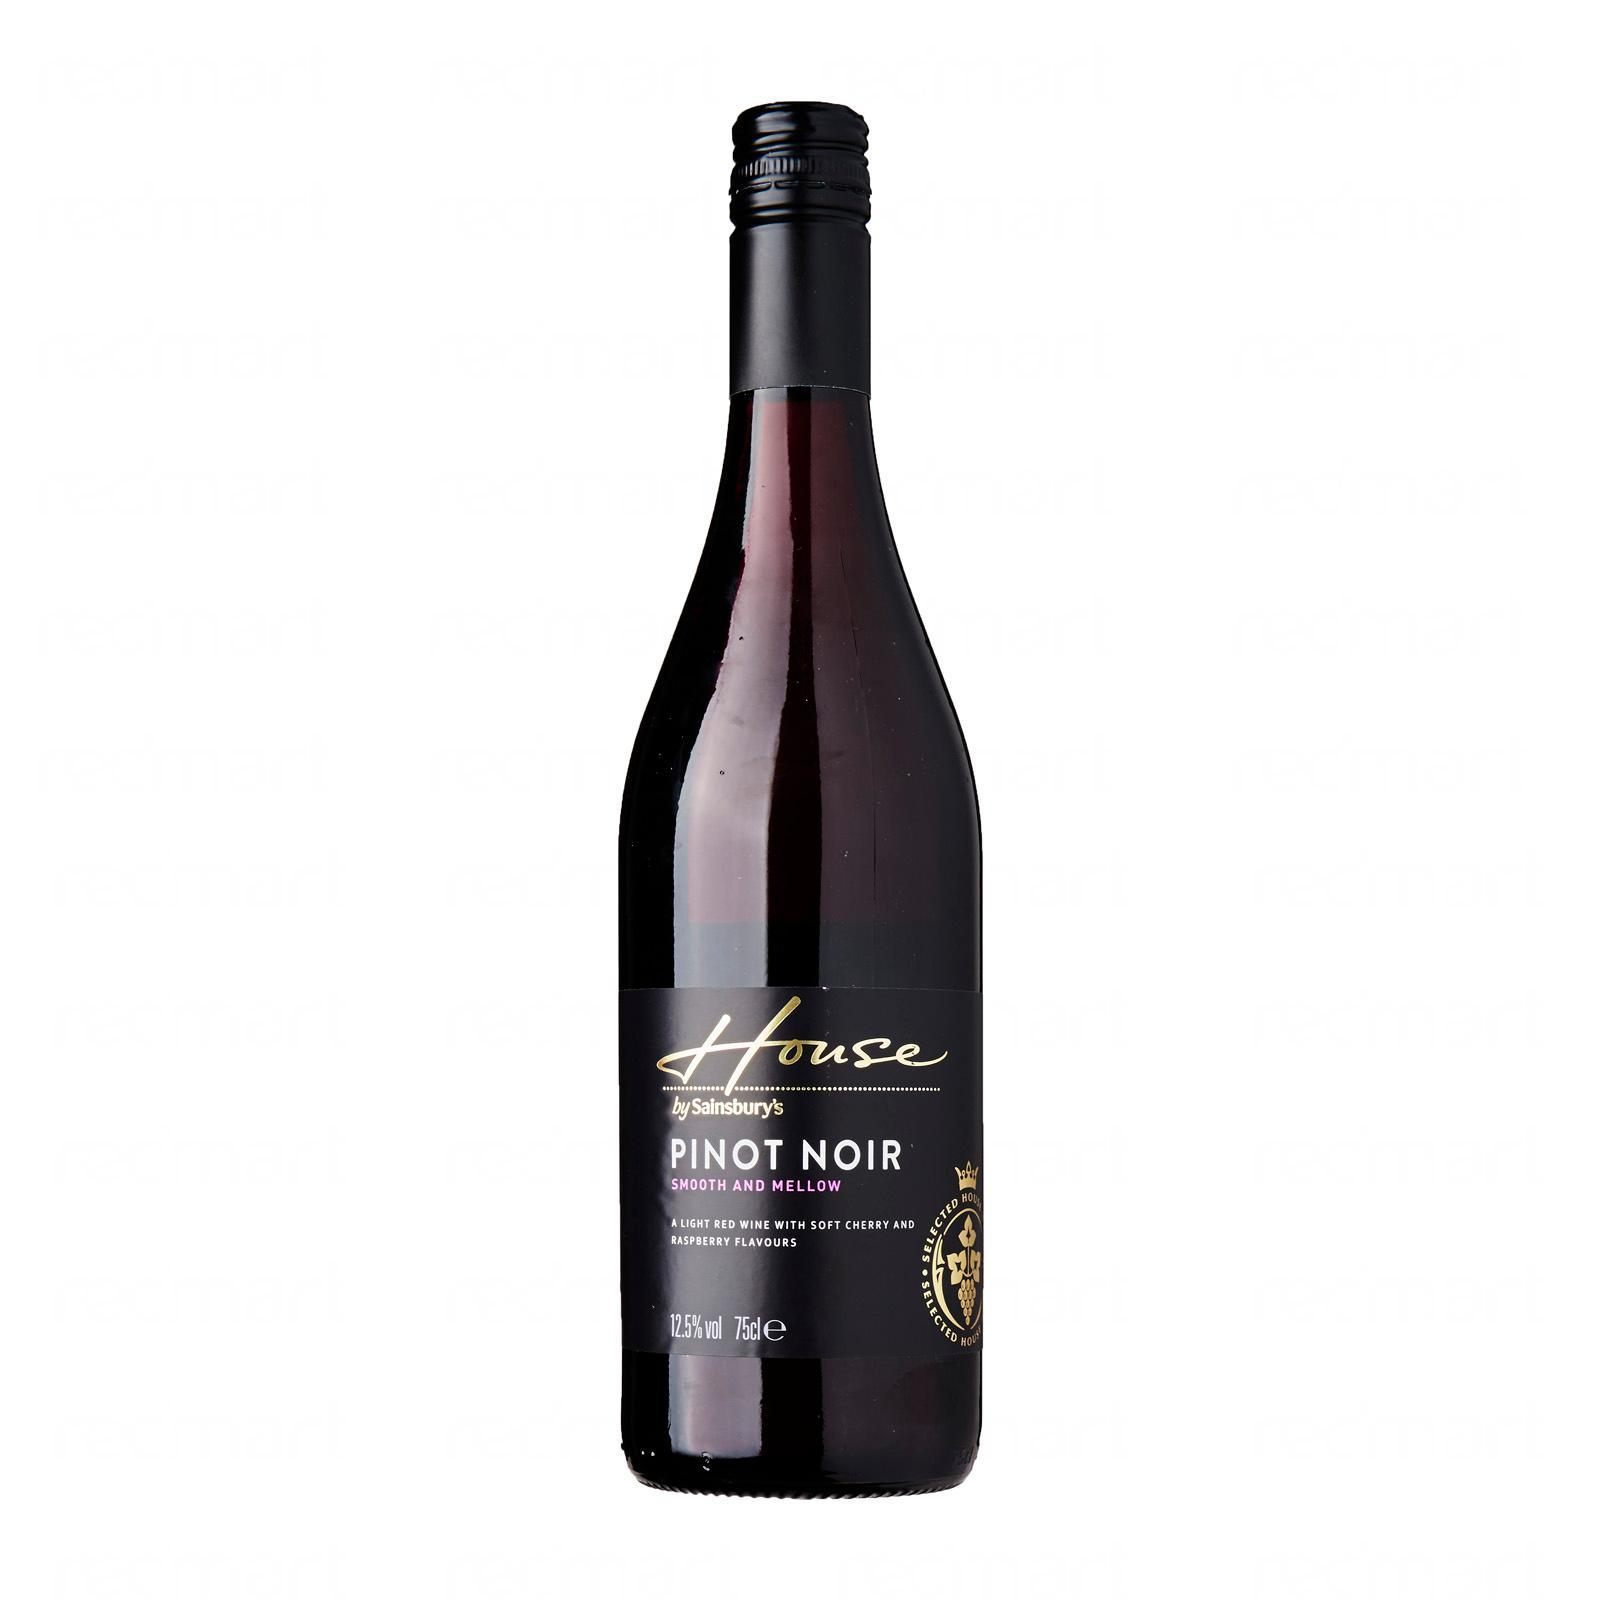 Sainsbury's House Pinot Noir Red Wine